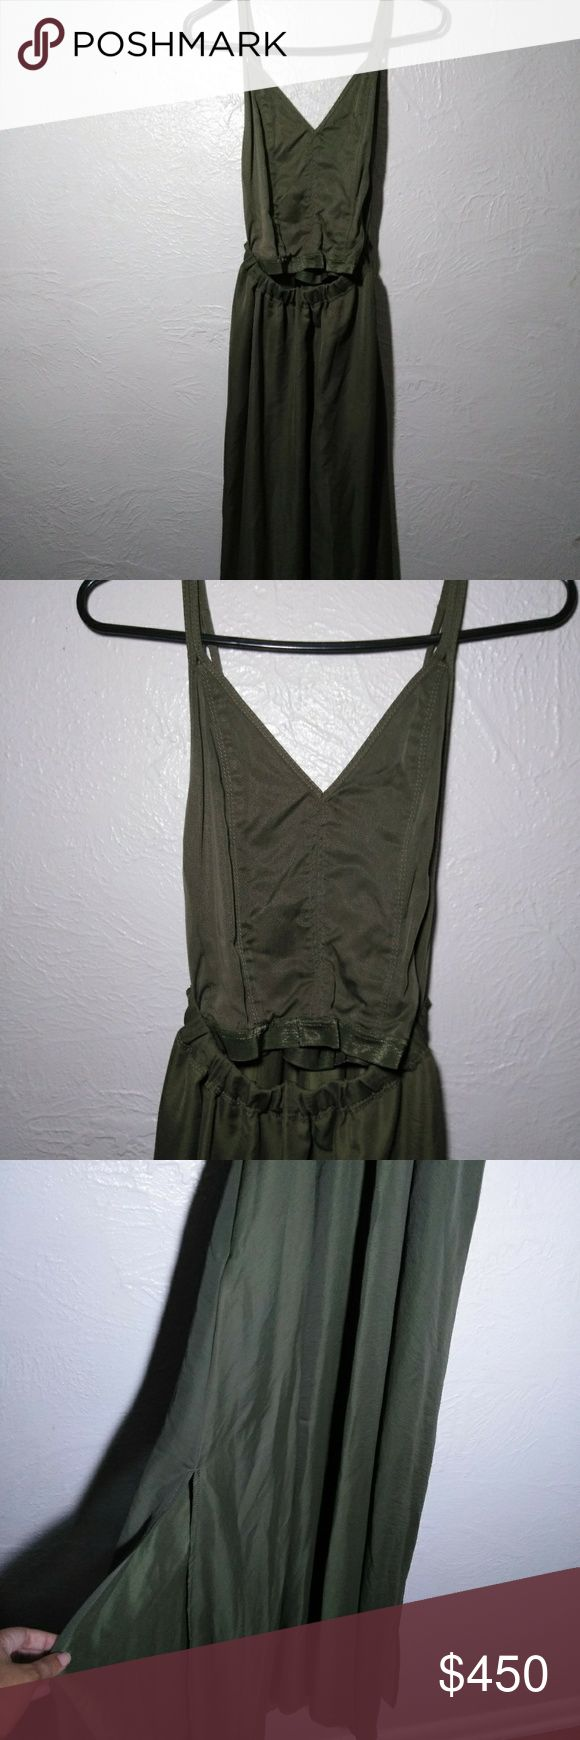 Diesel Olive Green Dress XS Looking for something elegant and edgy for prom? Homecoming? A Gala? This is the perfect dress. It's backless with straps. It shows your mid drift and the fabric is slightly see through. Great if your trying to show off that body you worked so hard to keep in shape! The dress is long with deep pockets and slits on both sides. It has never been worn and it retails for $650. There is a small wear barely noticeable in the final photo. Diesel Dresses Backless